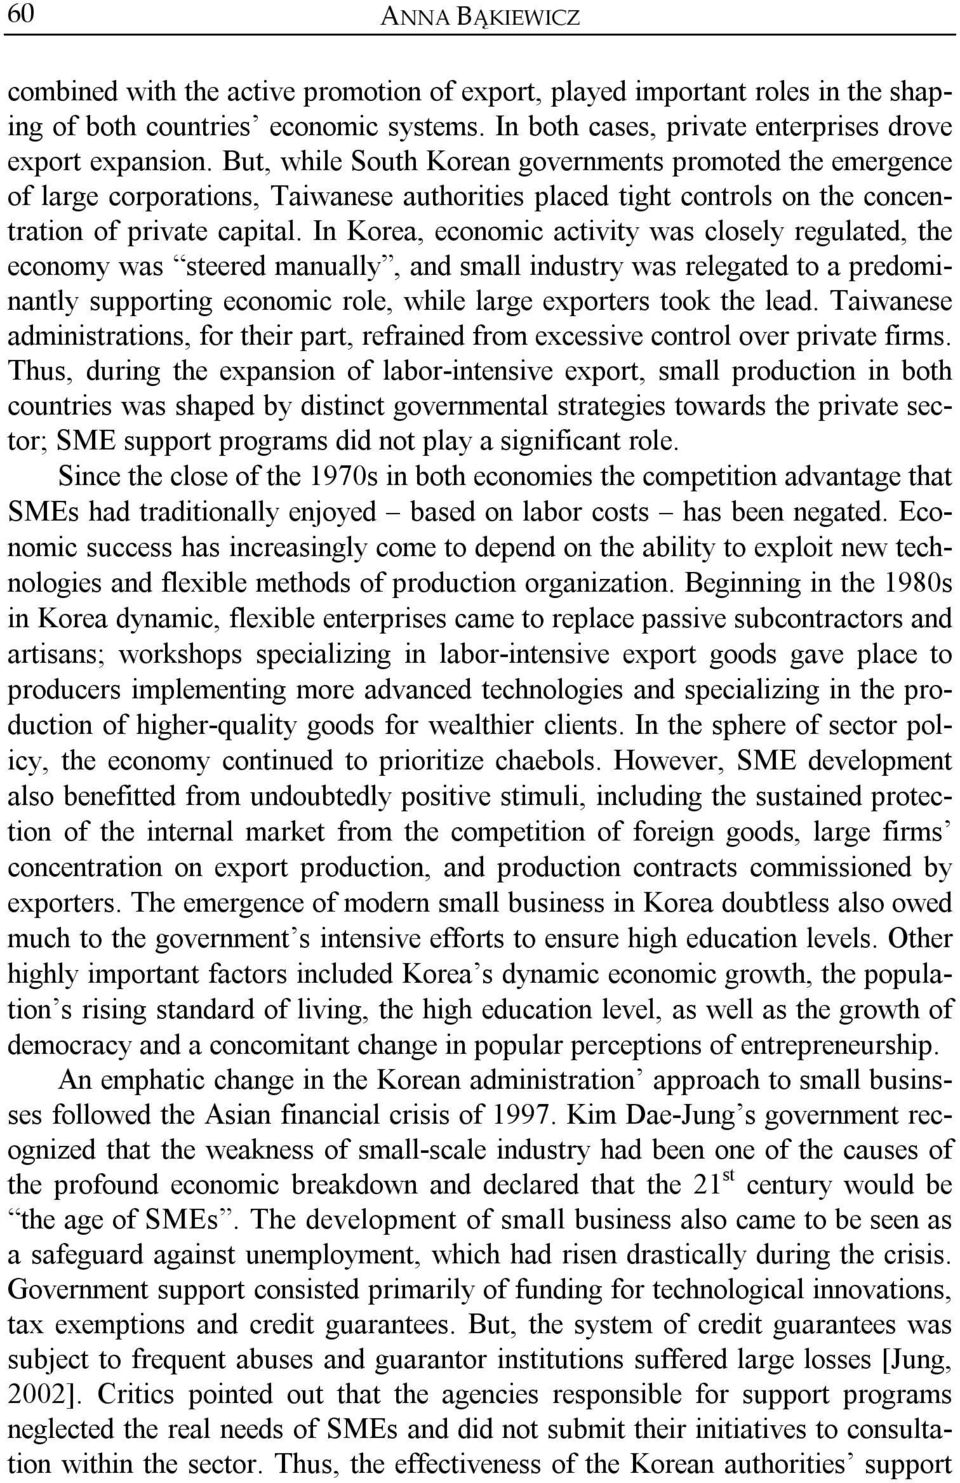 In Korea, economic activity was closely regulated, the economy was steered manually, and small industry was relegated to a predominantly supporting economic role, while large exporters took the lead.